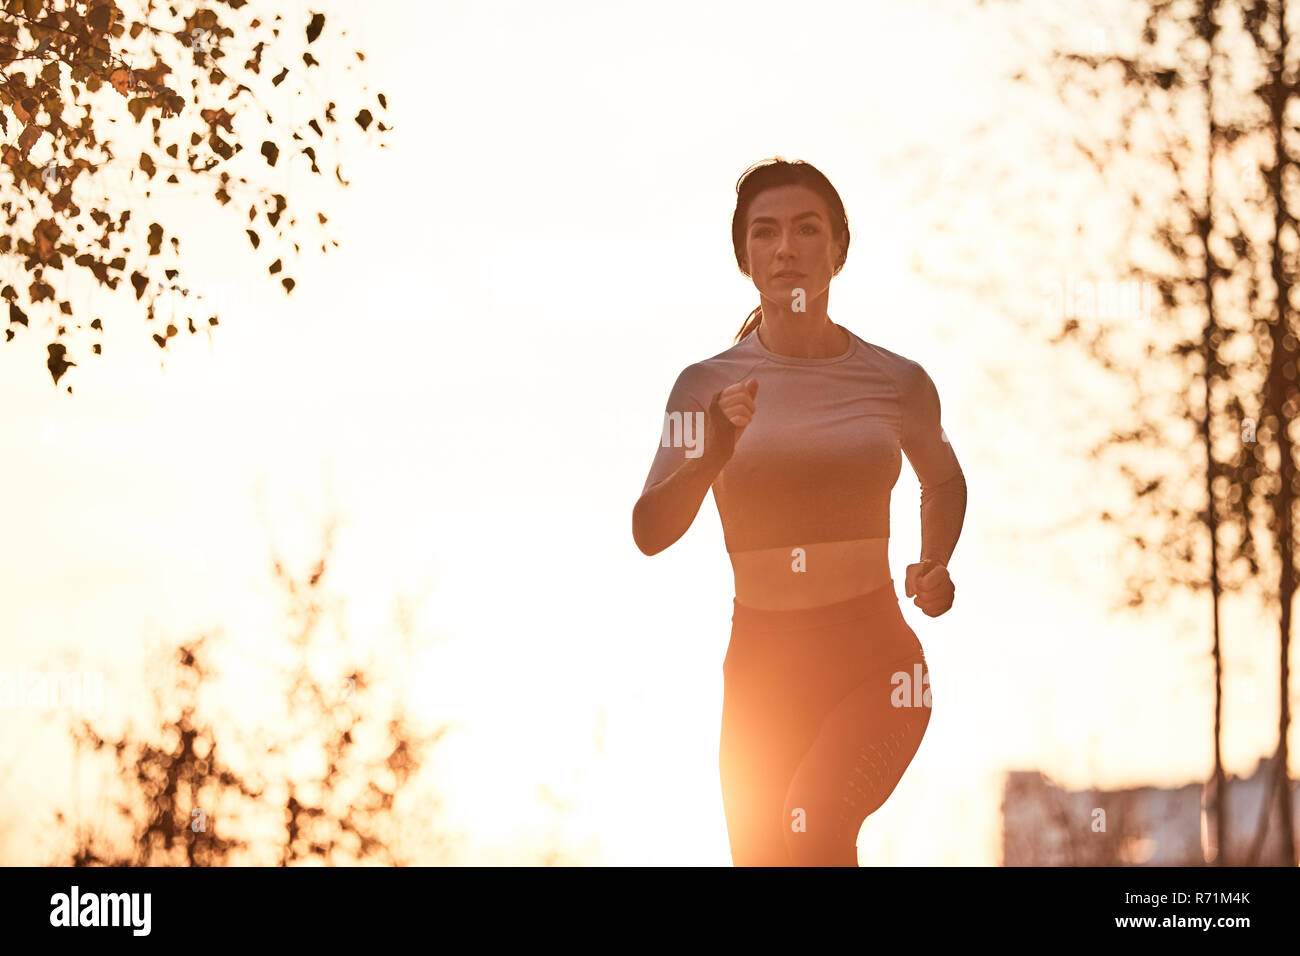 a lone female jogging in a city location - Stock Image